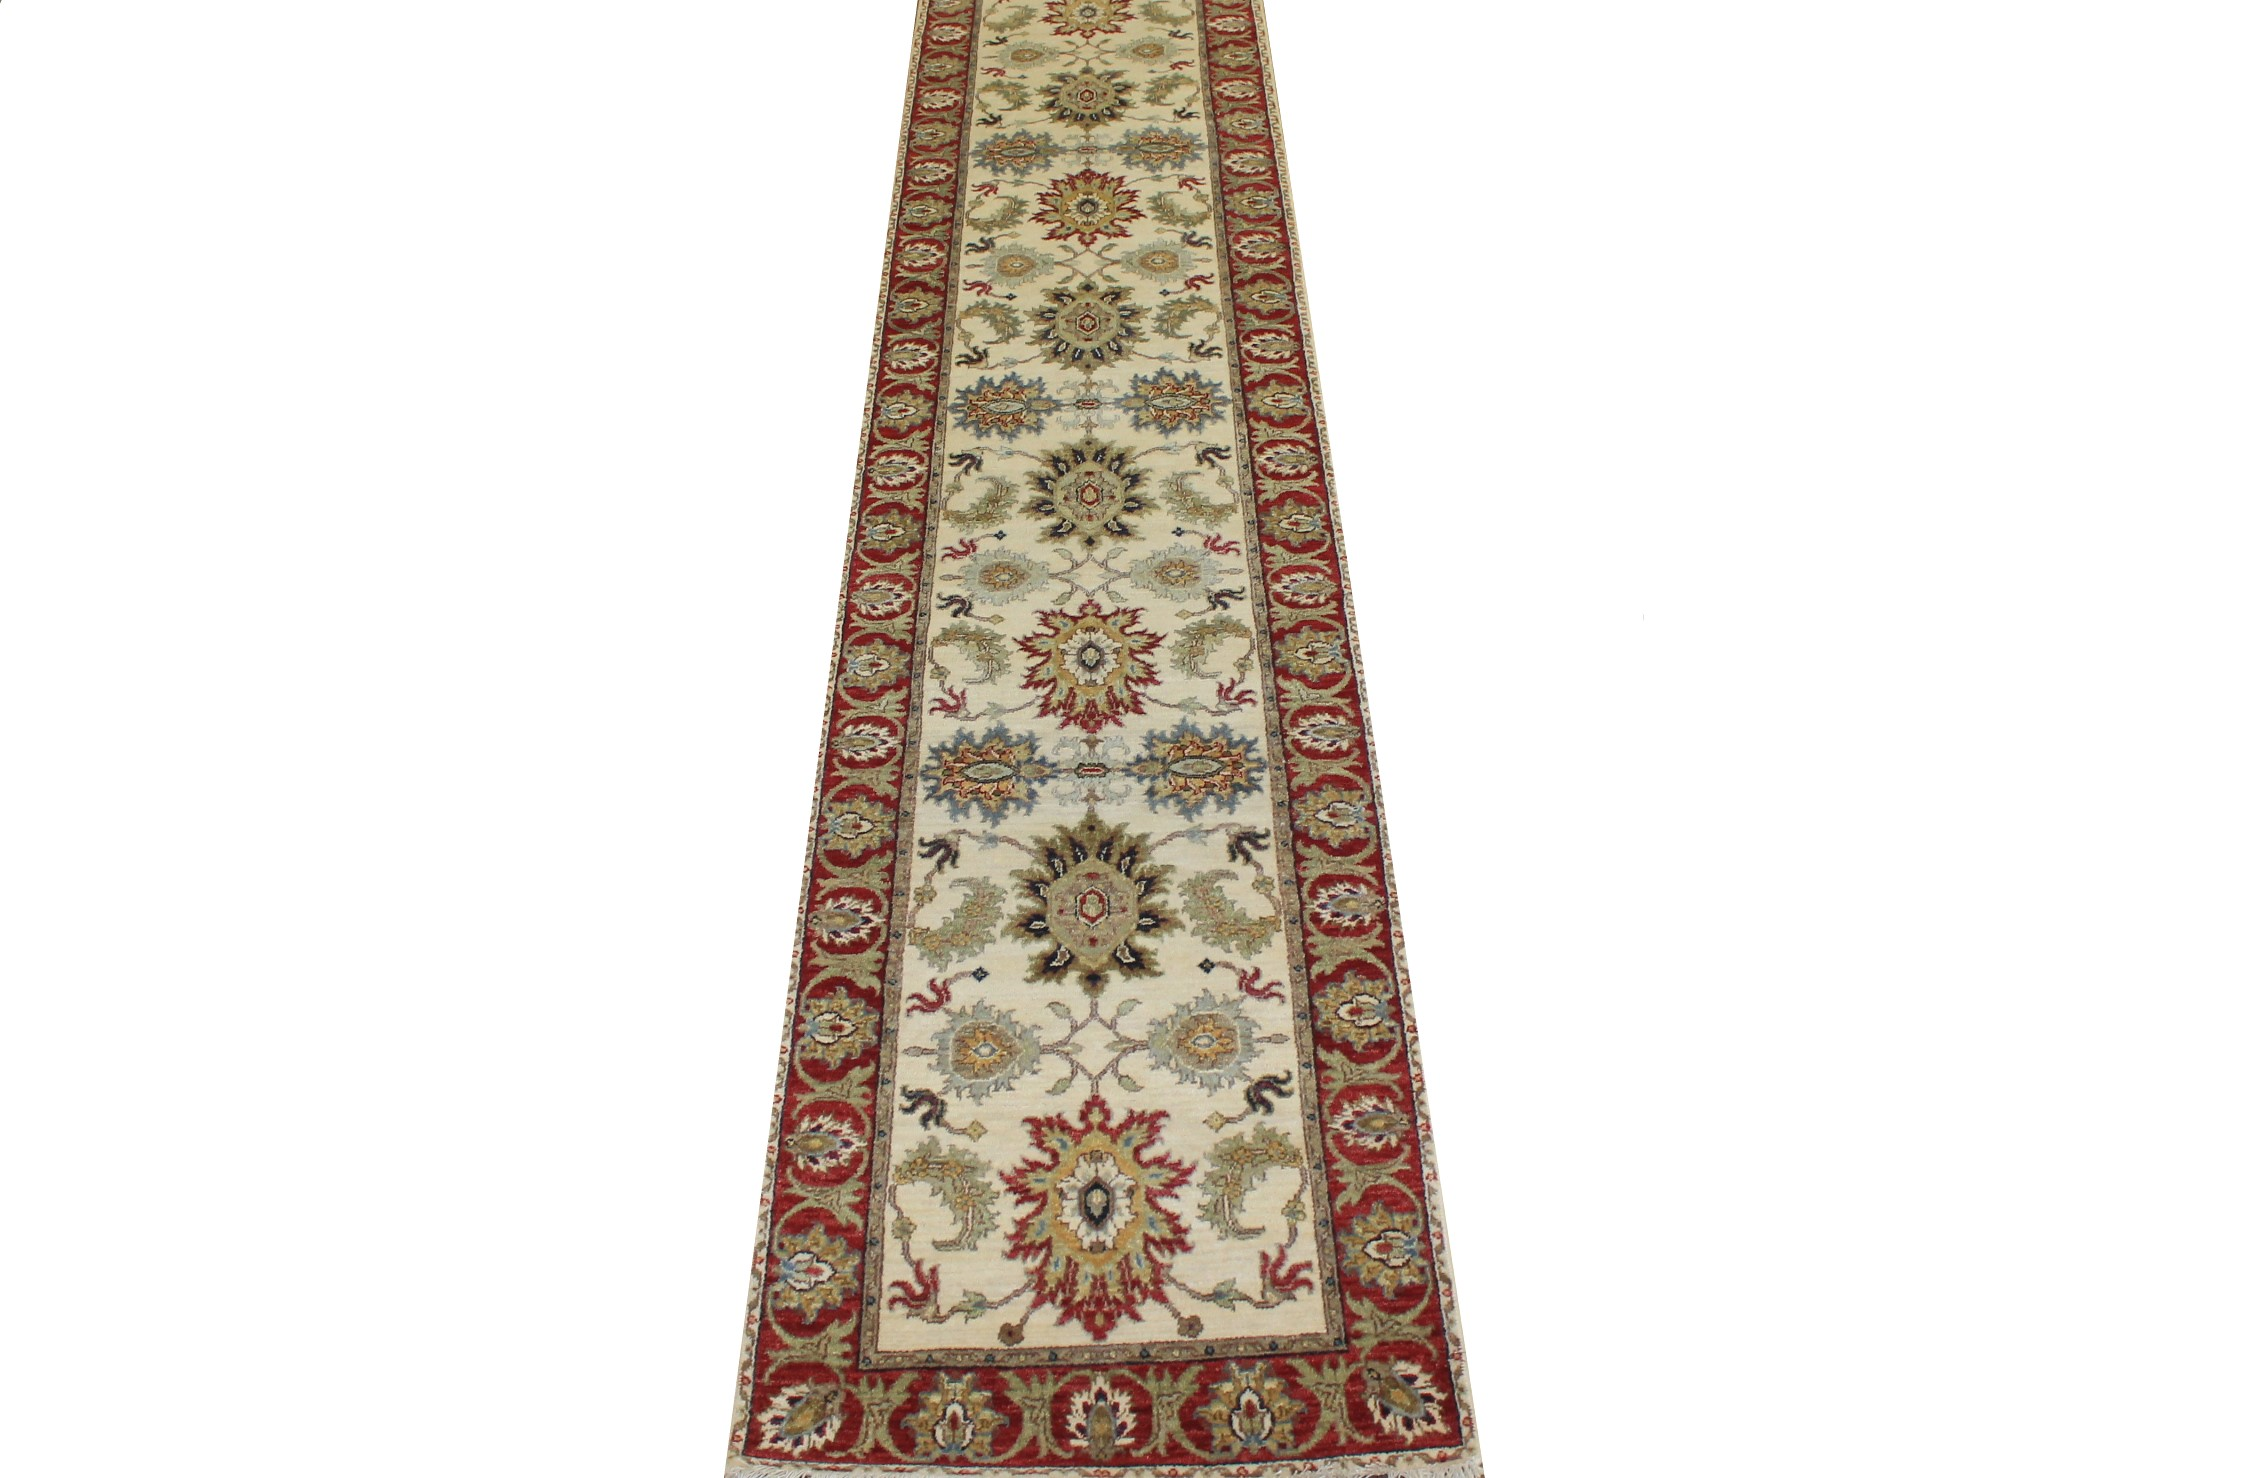 12 ft. Runner Traditional Hand Knotted Wool Area Rug - MR024780